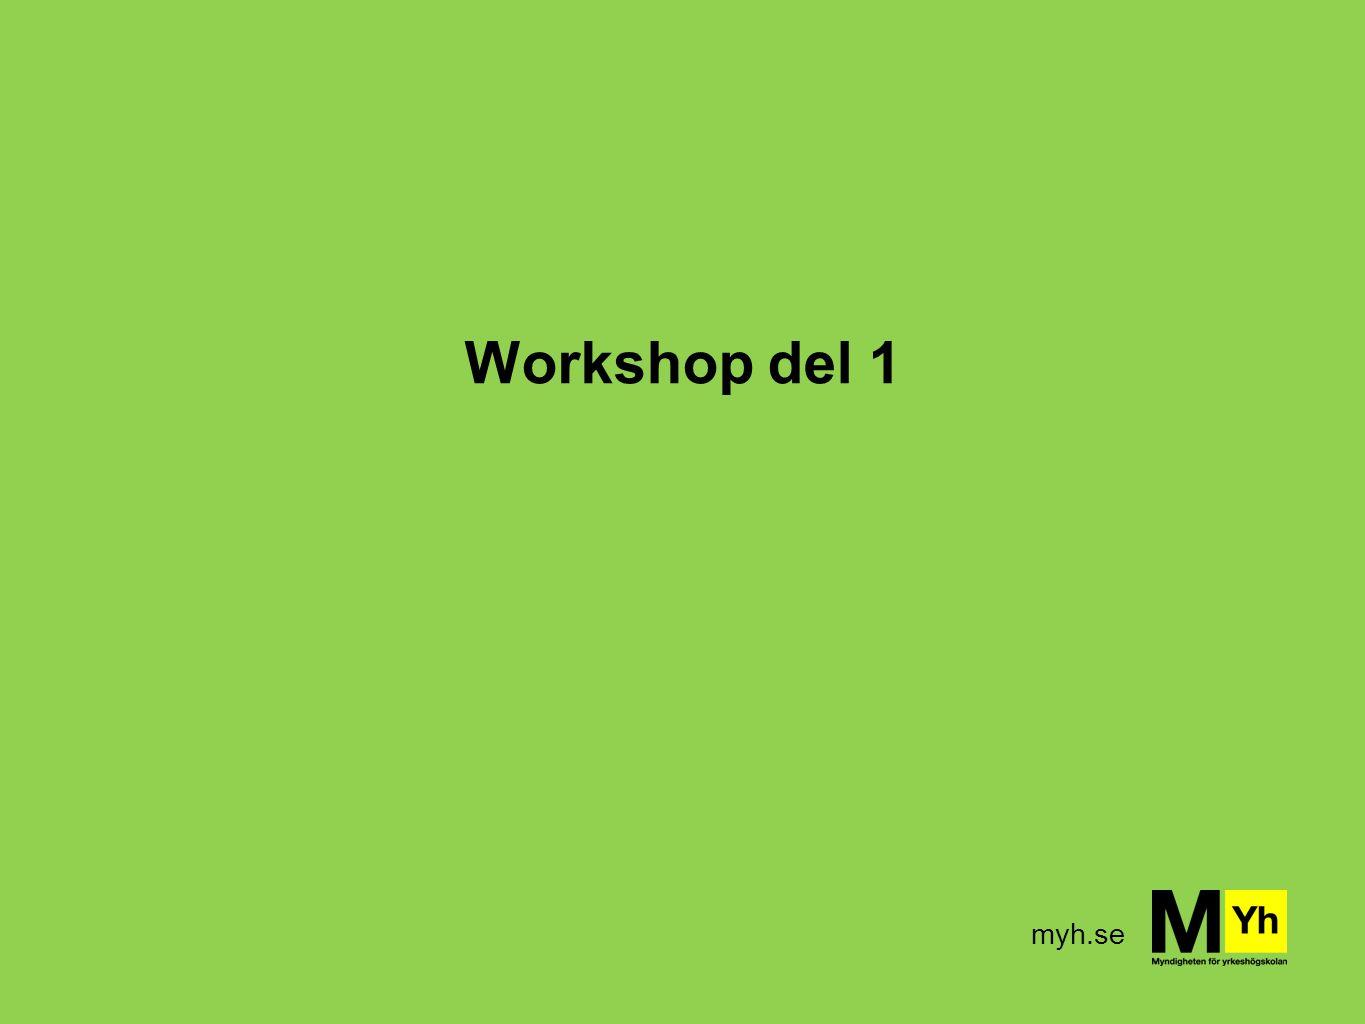 Workshop del 1